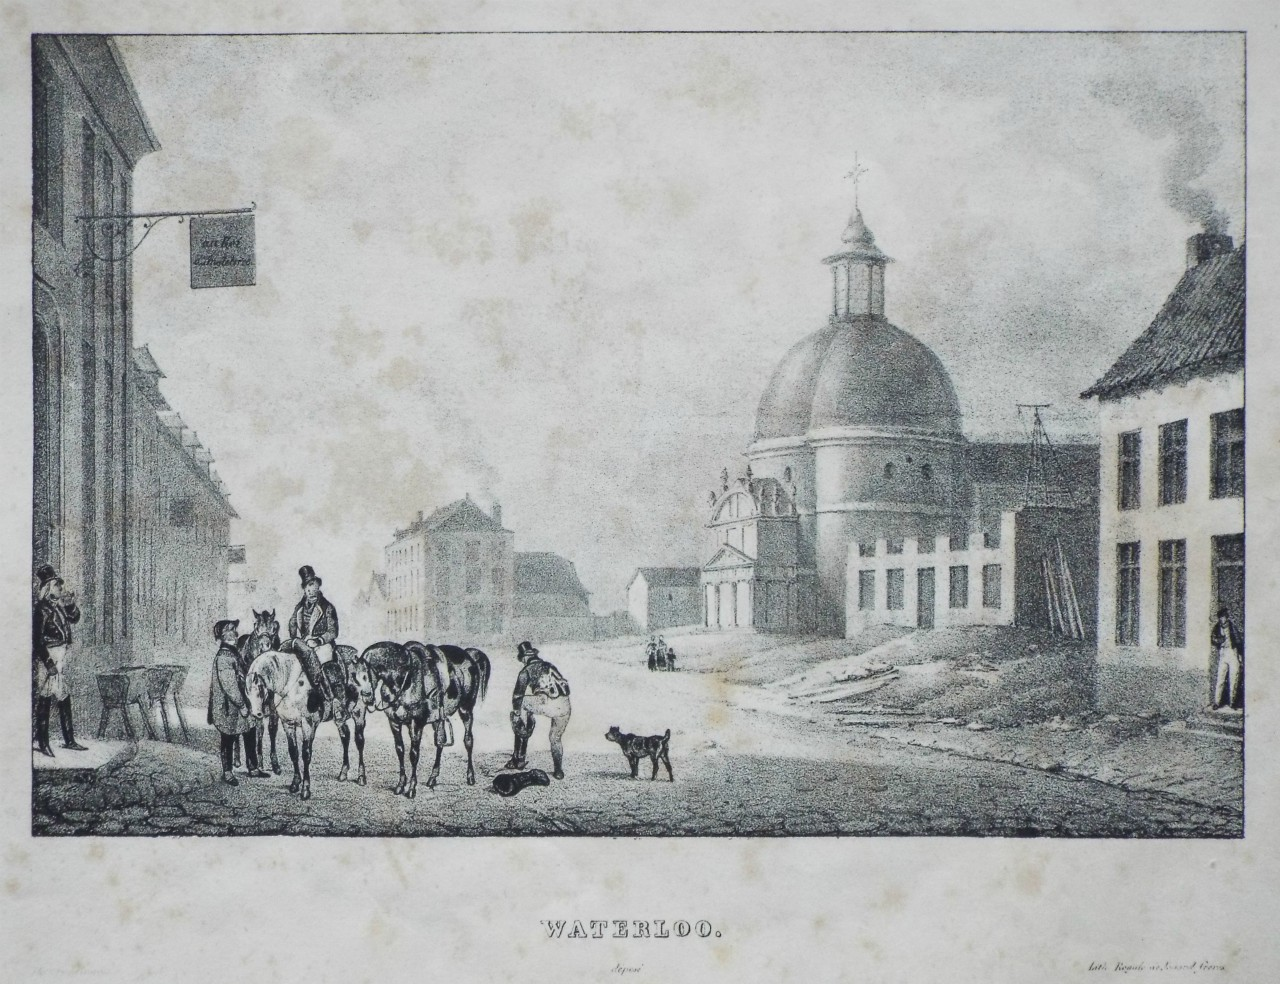 Lithograph - Waterloo. -